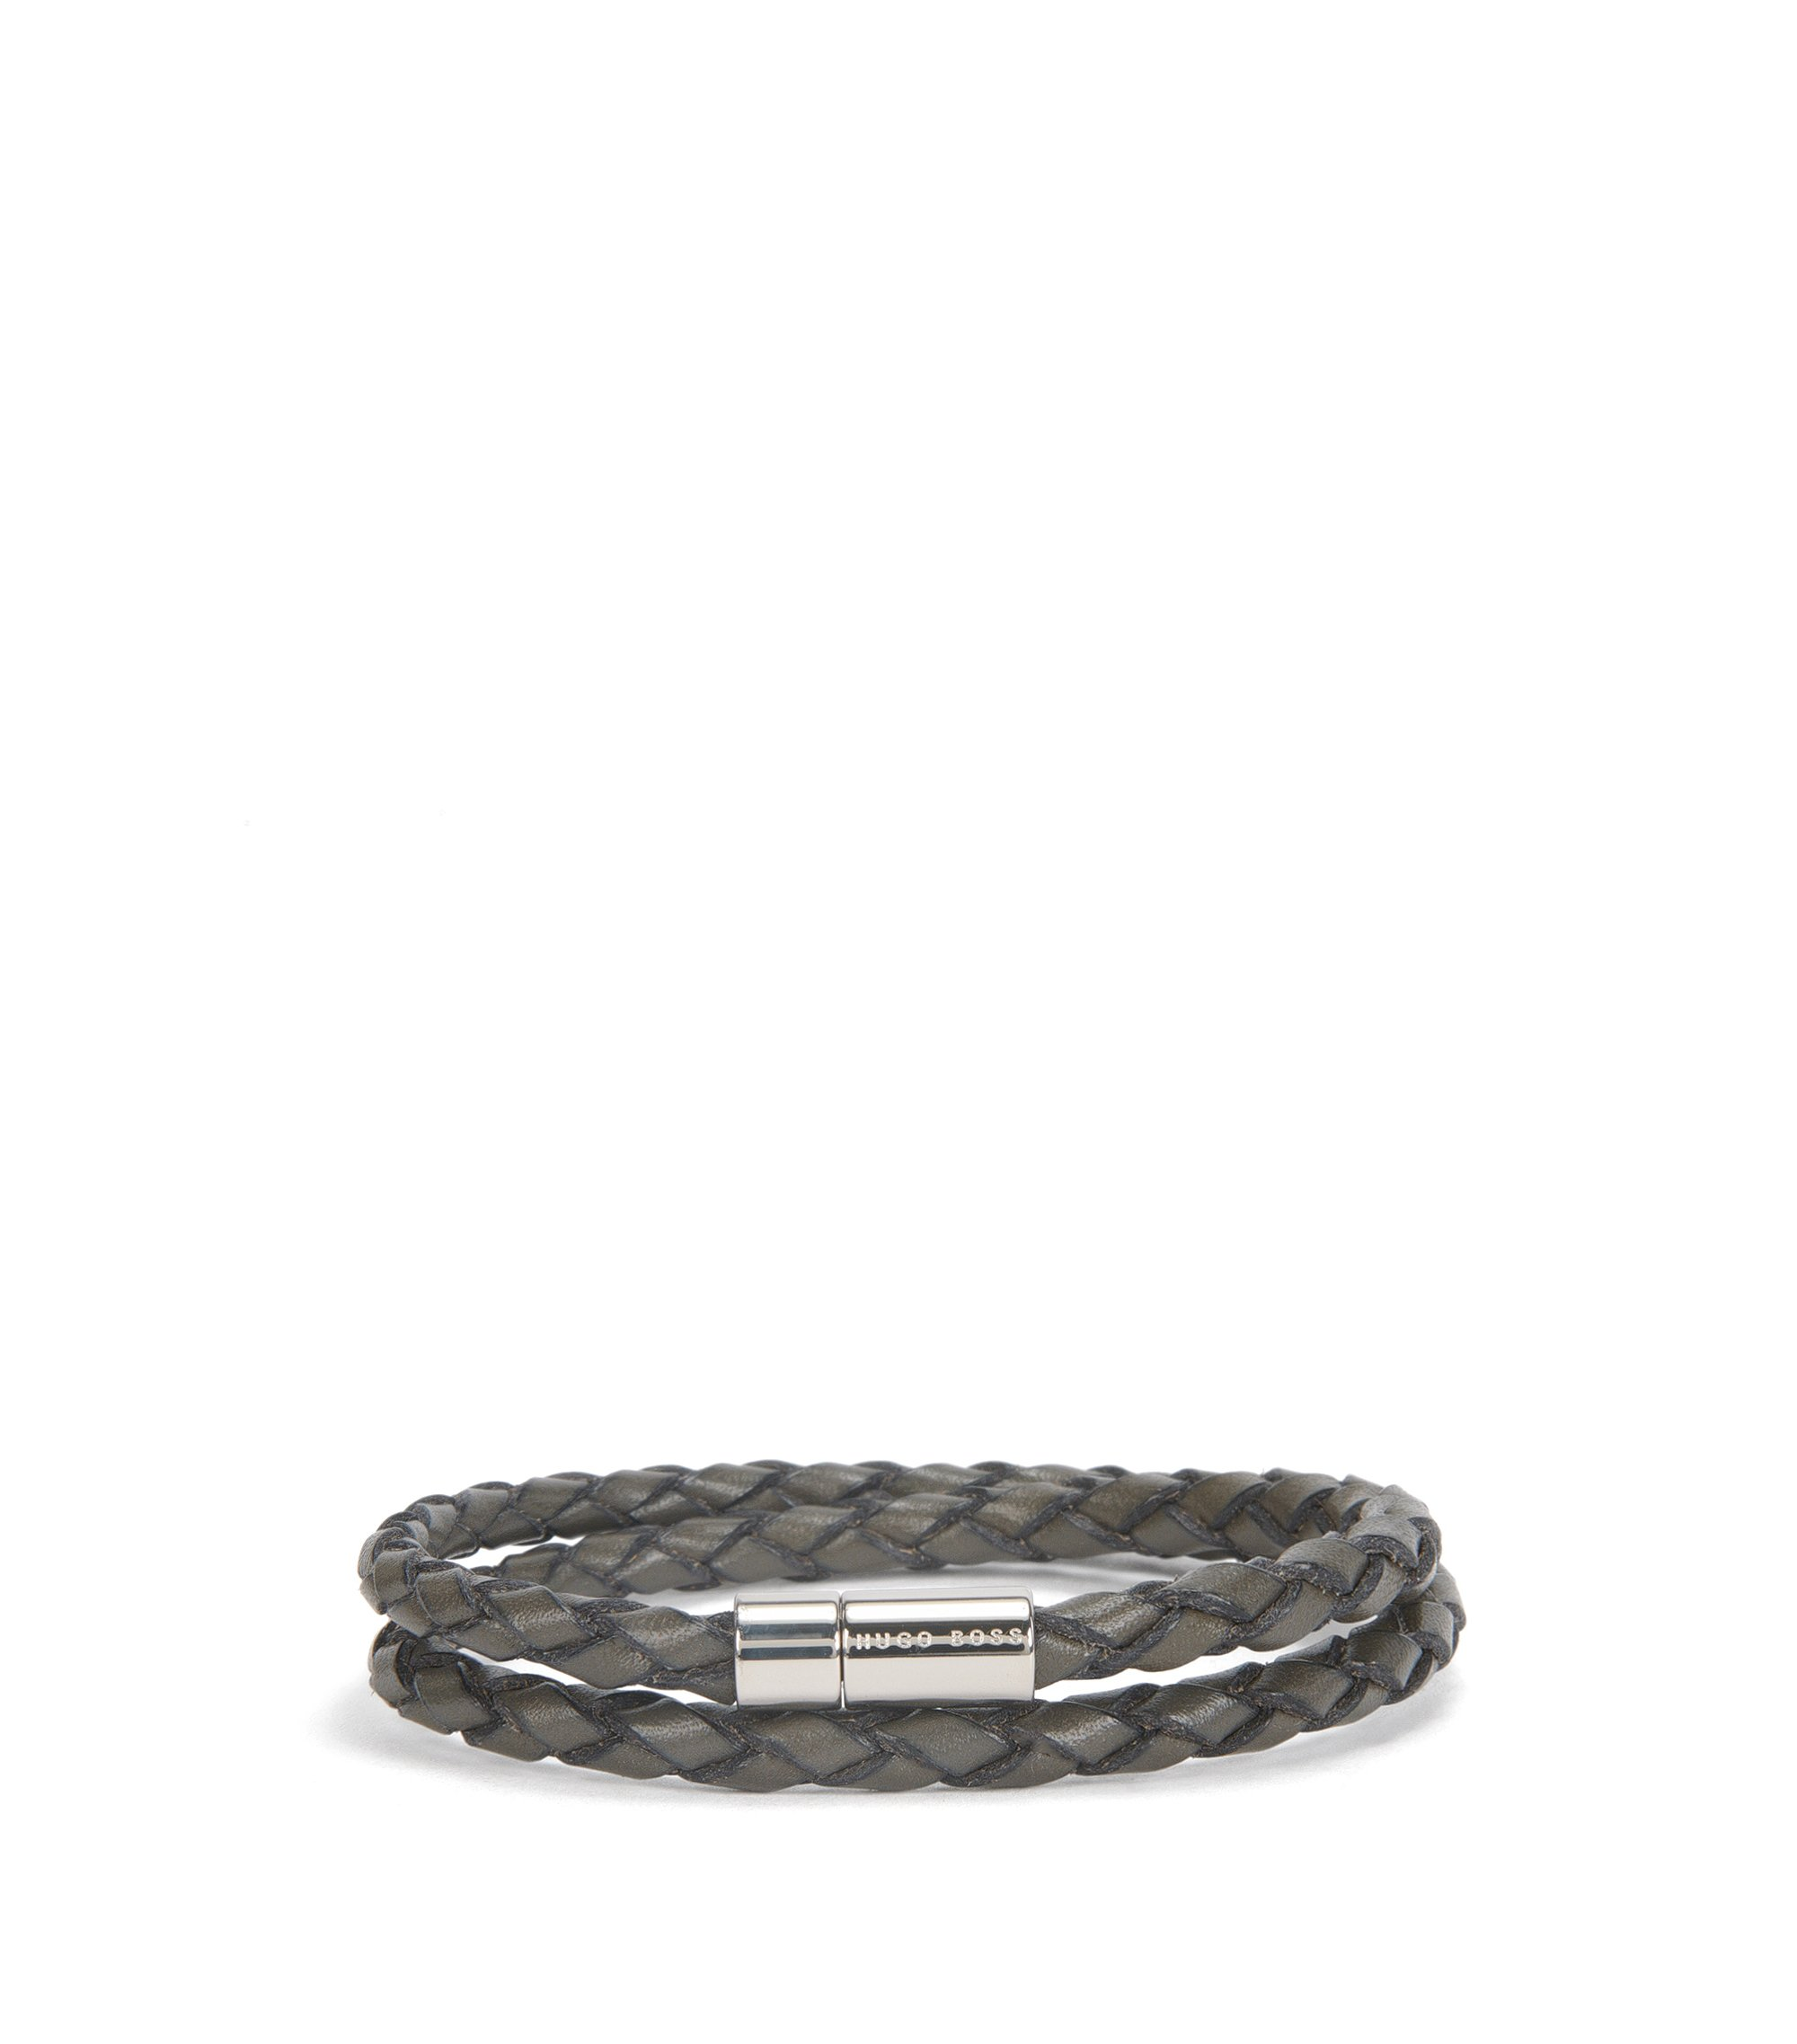 Braided leather bracelet with snap metal closure, Light Grey